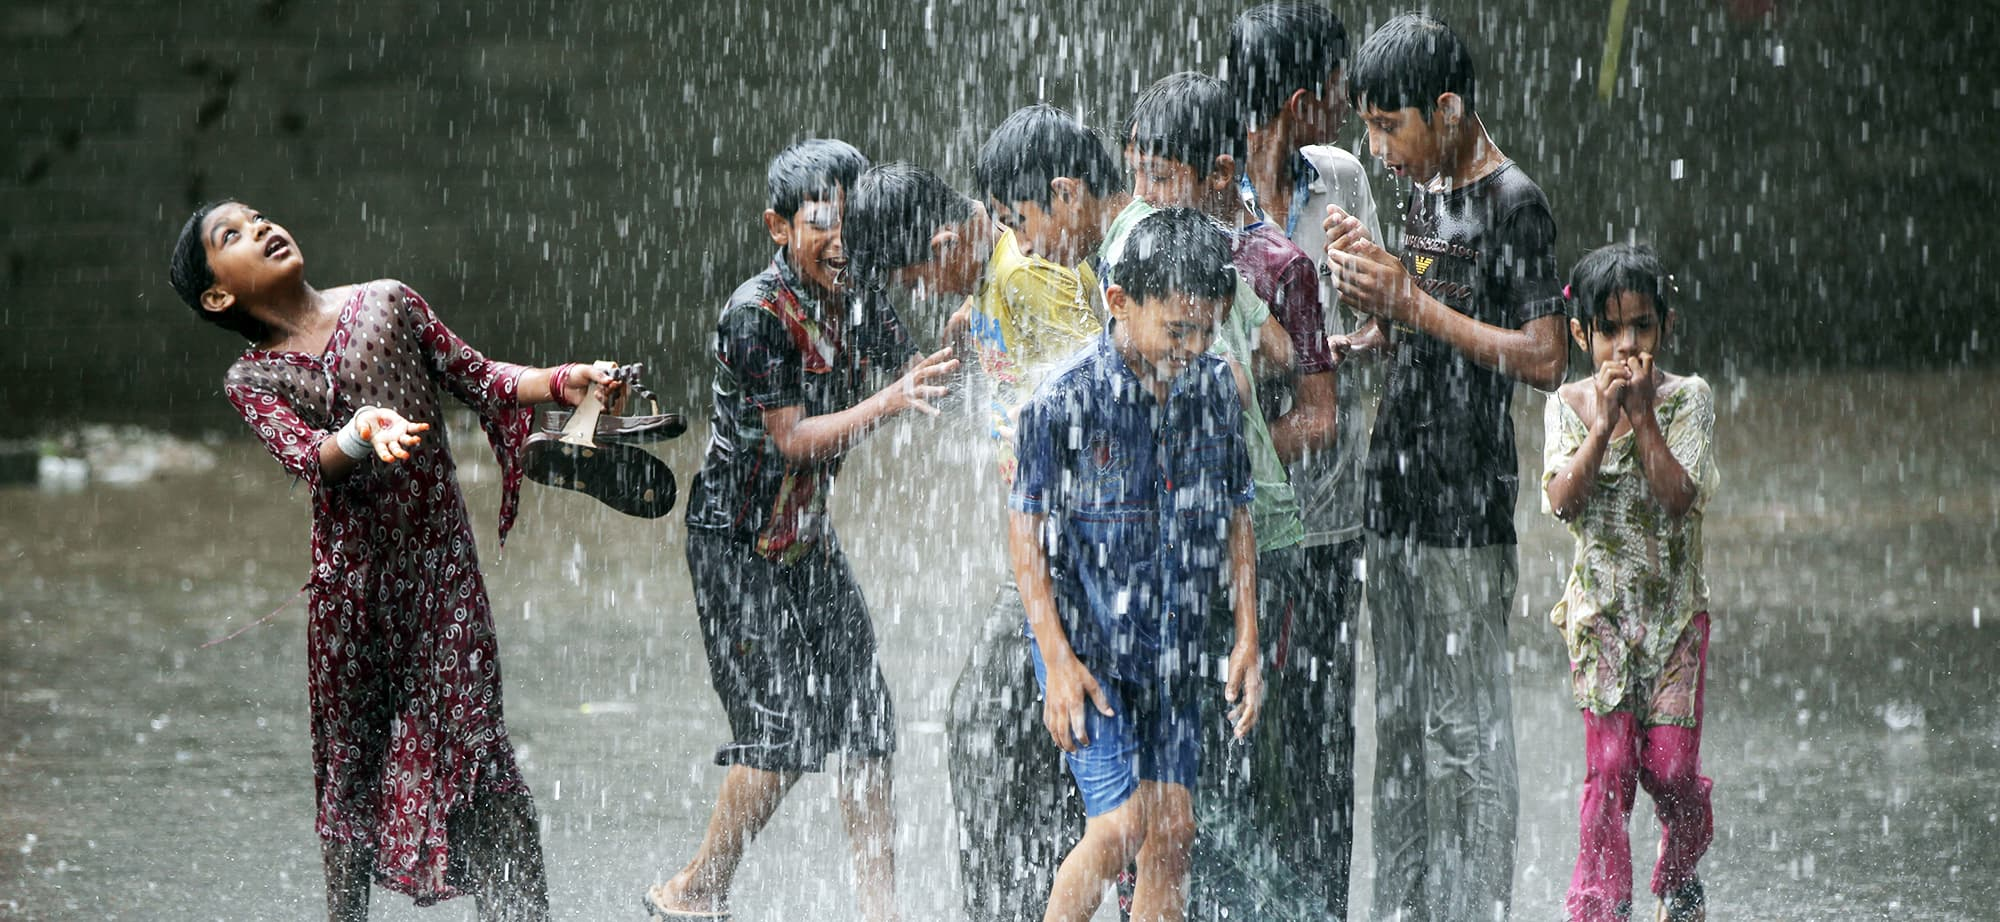 Children play in the rain in Lahore, Pakistan July 16, 2019. REUTERS/Mohsin Raza